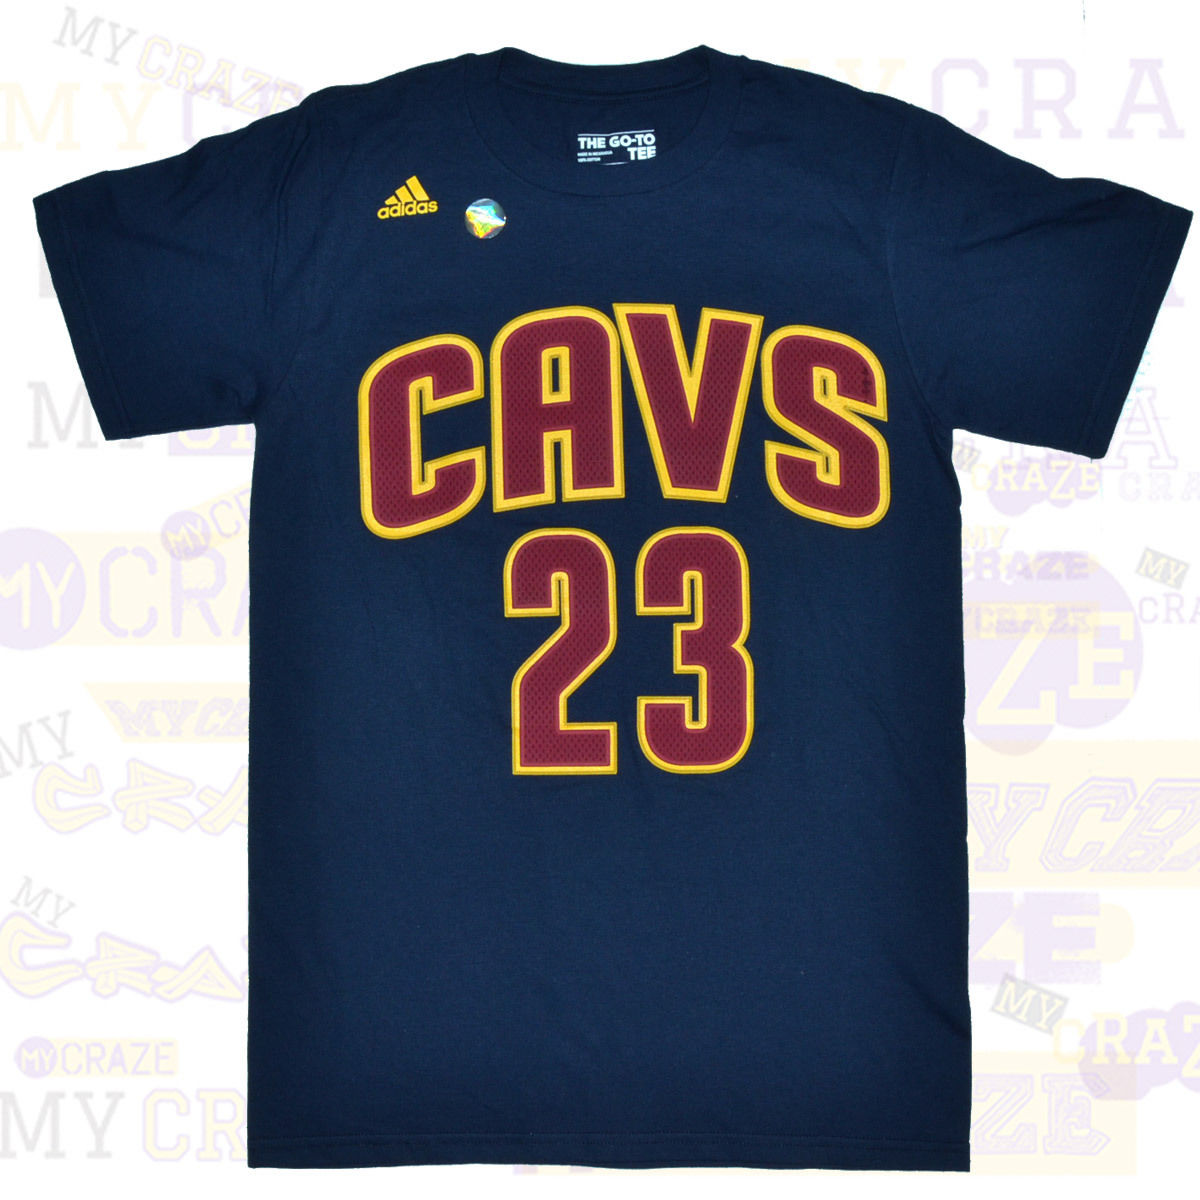 brand new 11583 4599f CLEVELAND CAVALIERS #23 James CAVS Adidas NBA Jersey Navy T-Shirt